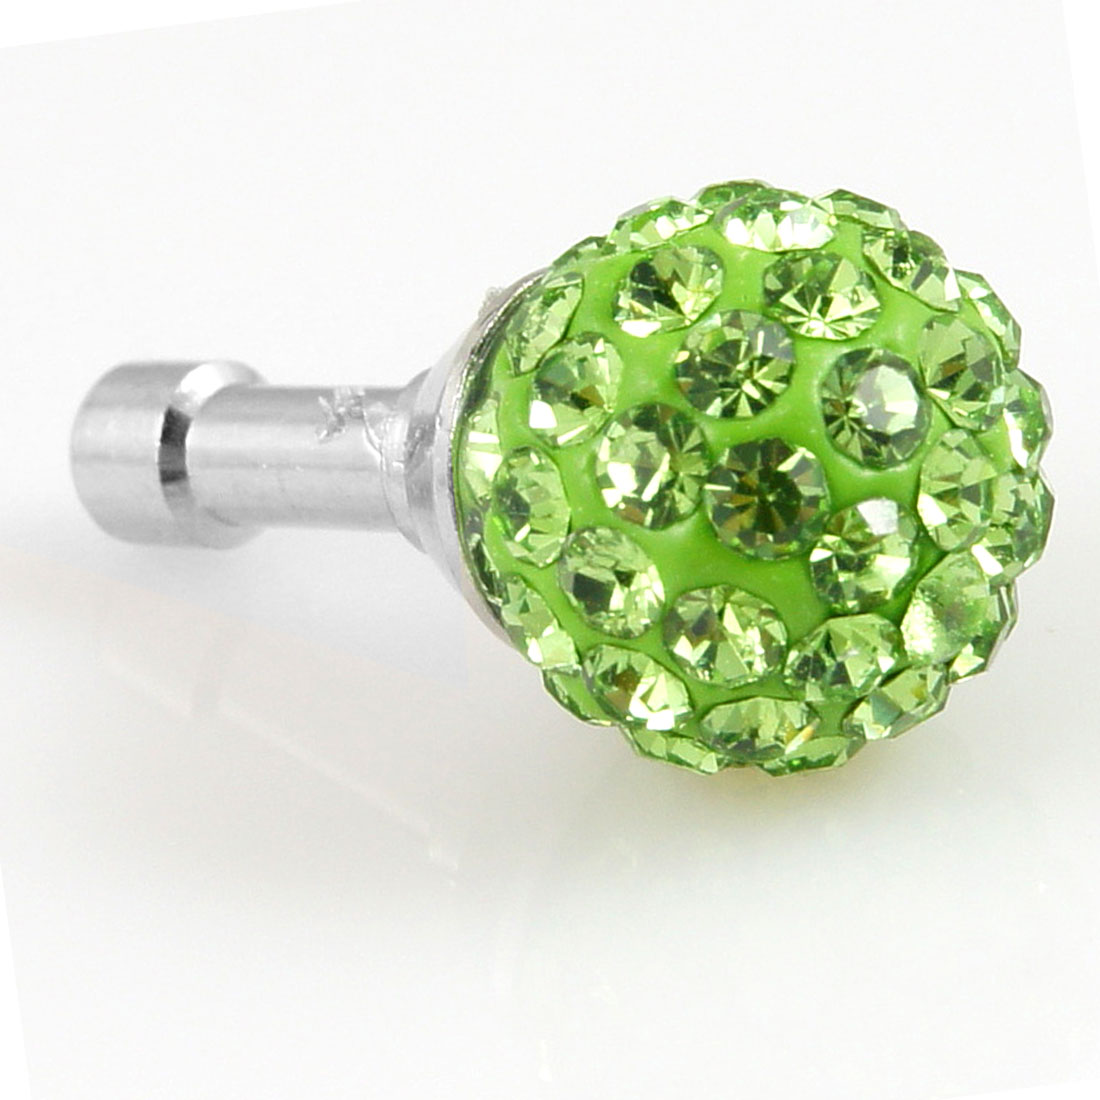 Bling Green Crystal 3.5mm Earphone Ear Cap Anti Dust Cover for Phone